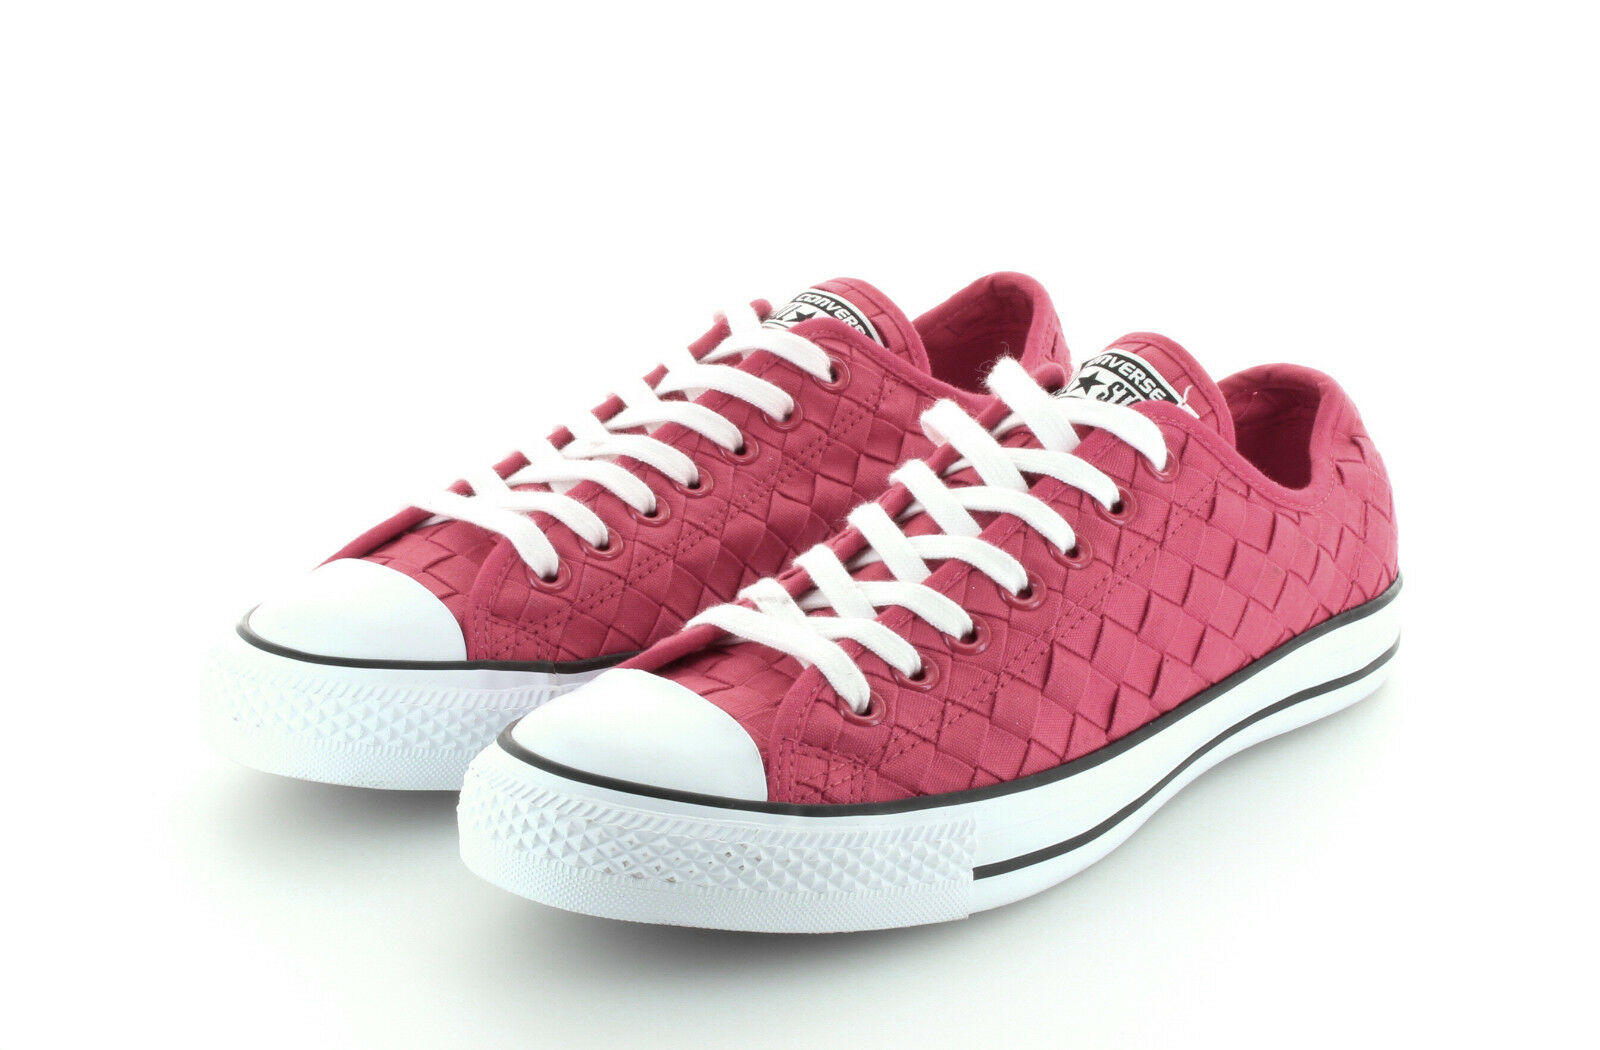 Converse Chuck Taylor AS Ox Textile Woven Red 42,5 / 43,5 US 9